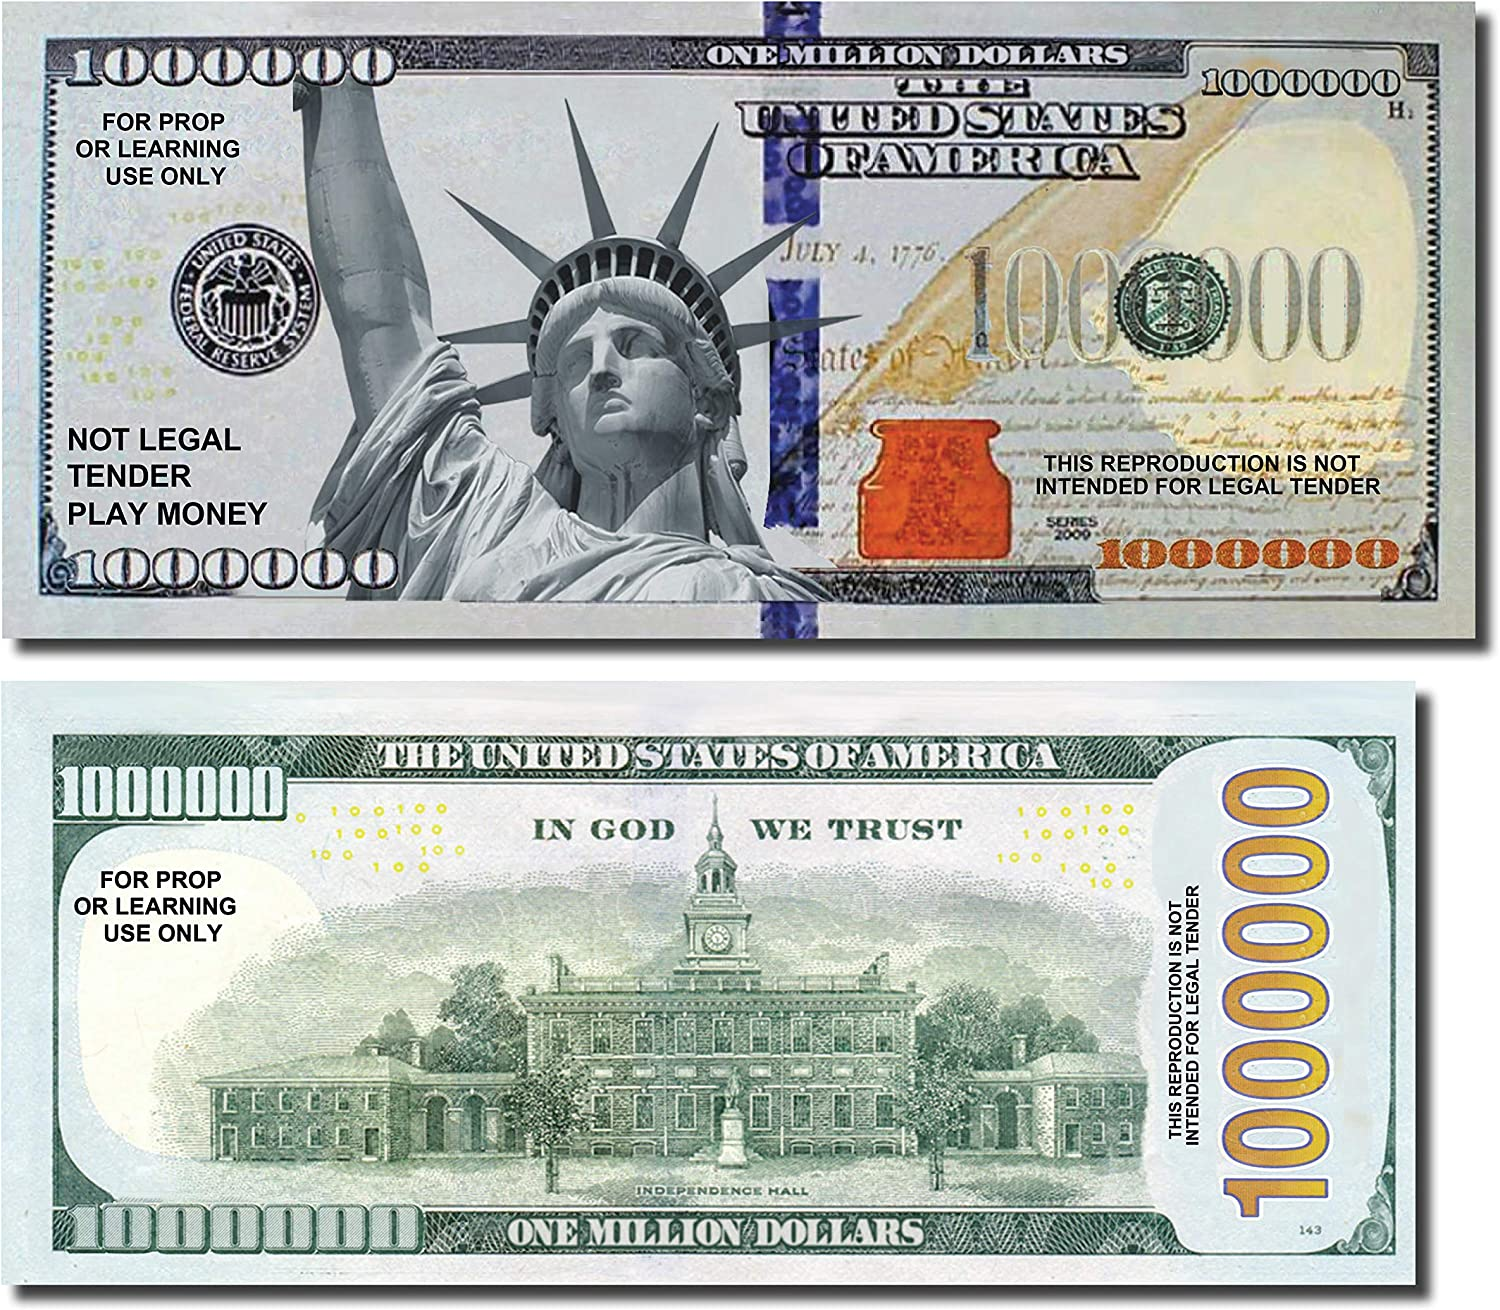 Million Dollar Play Money Bills, 50 Bills per Pack of Best Real Looking Size & Color, The #1 Selling for Schools, Props, and Fun (A: Million Dollar Bills)